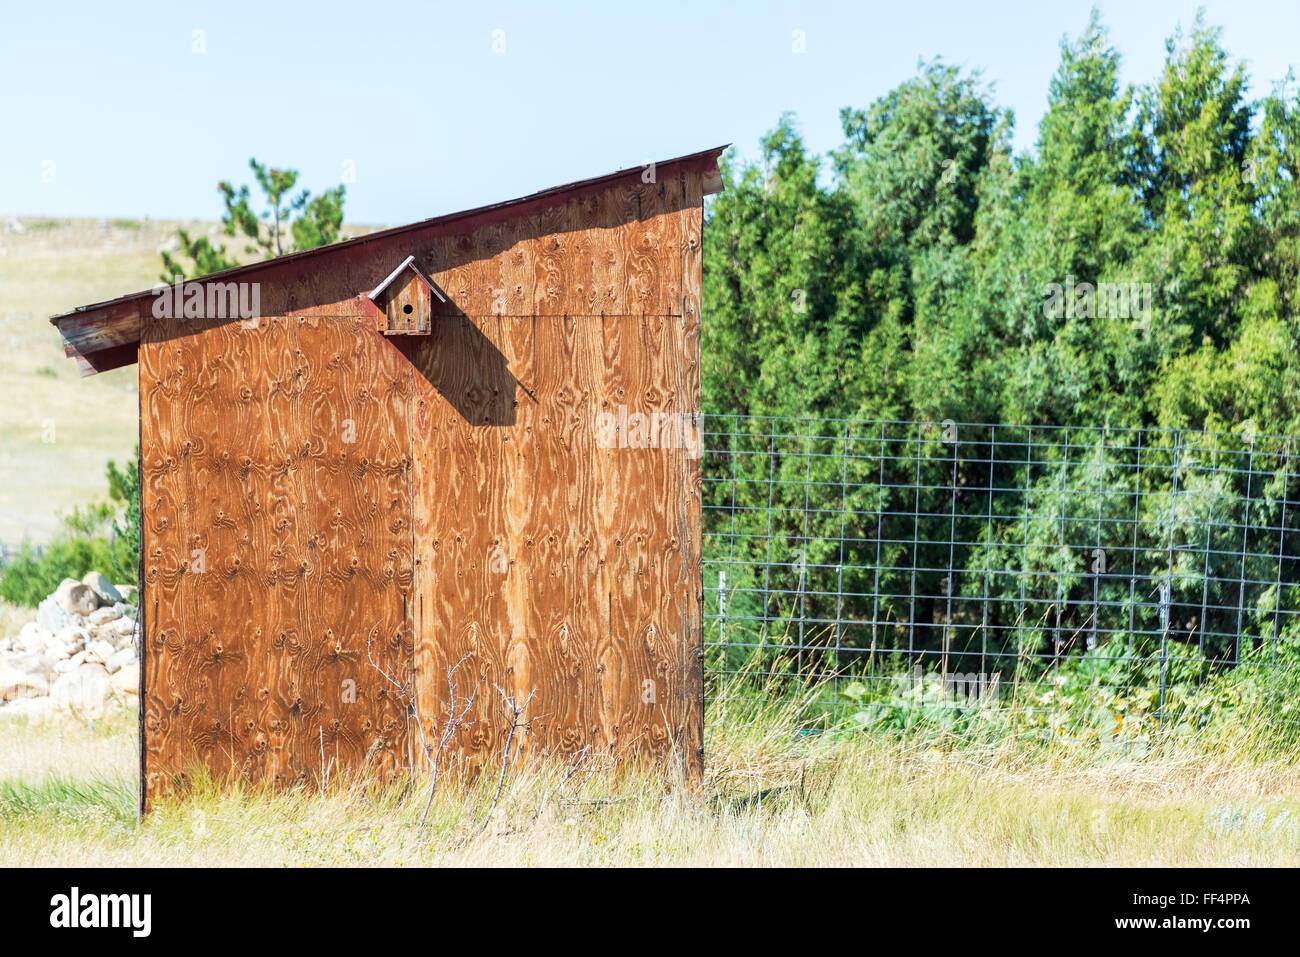 Old shed and birdhouse in Buffalo, Wyoming - Stock Image